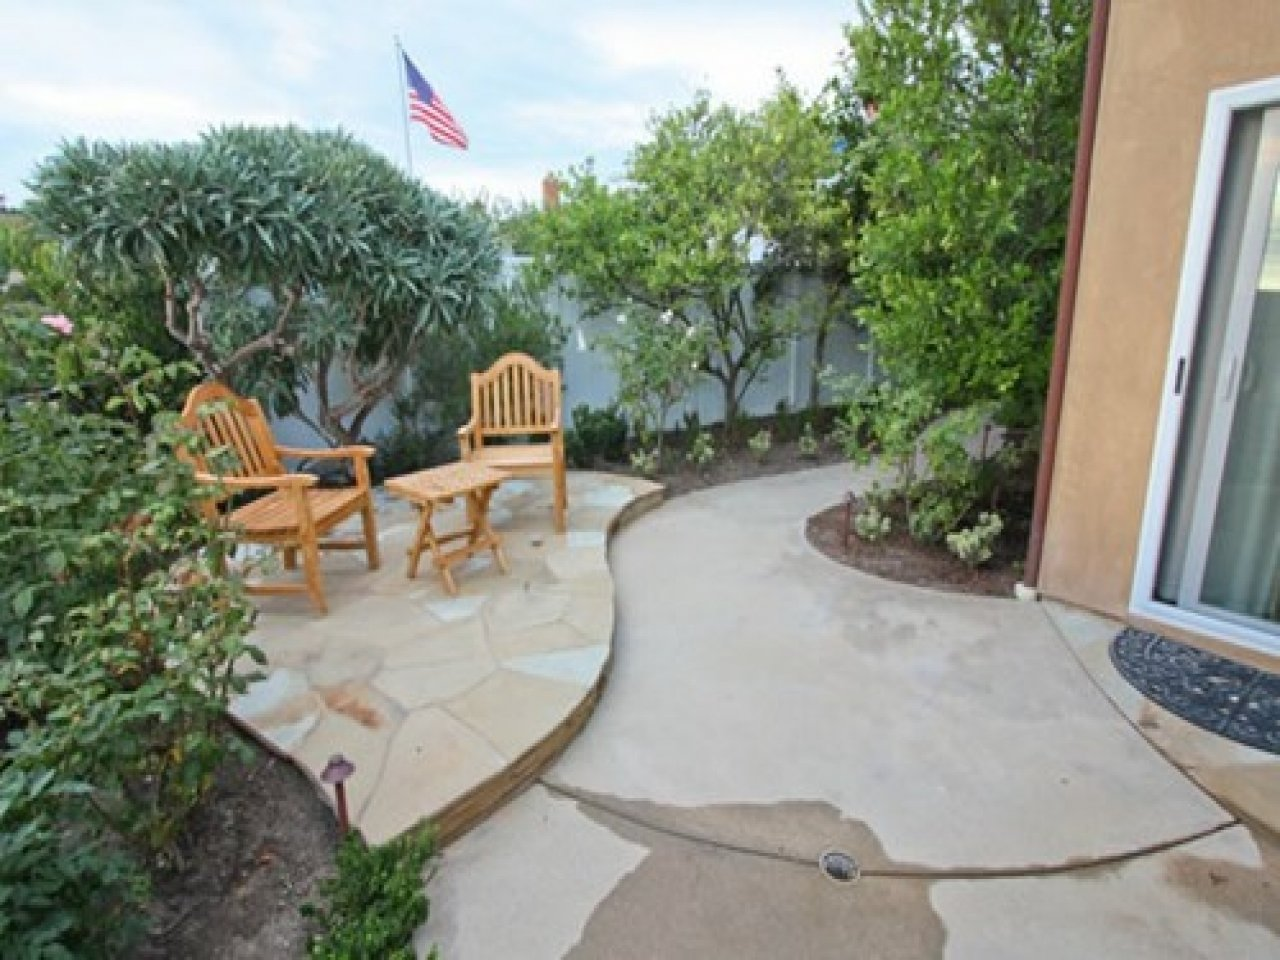 10 Best Concrete Patio Ideas For Small Backyards backyard concrete patio designs concrete patio ideas small